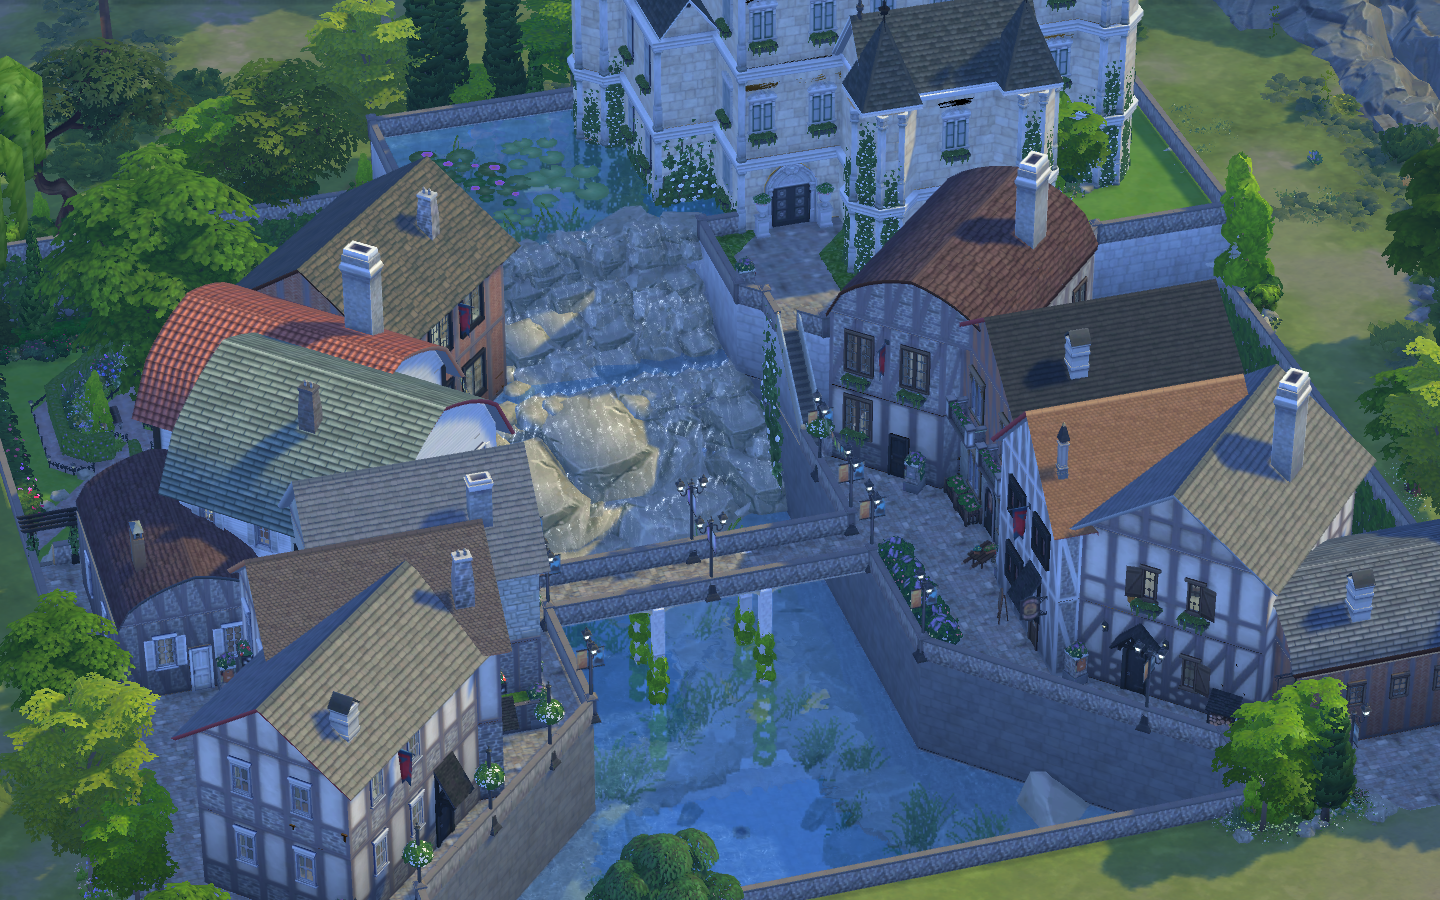 The sims4: 10 awesome fan-made houses to download | simsvip.